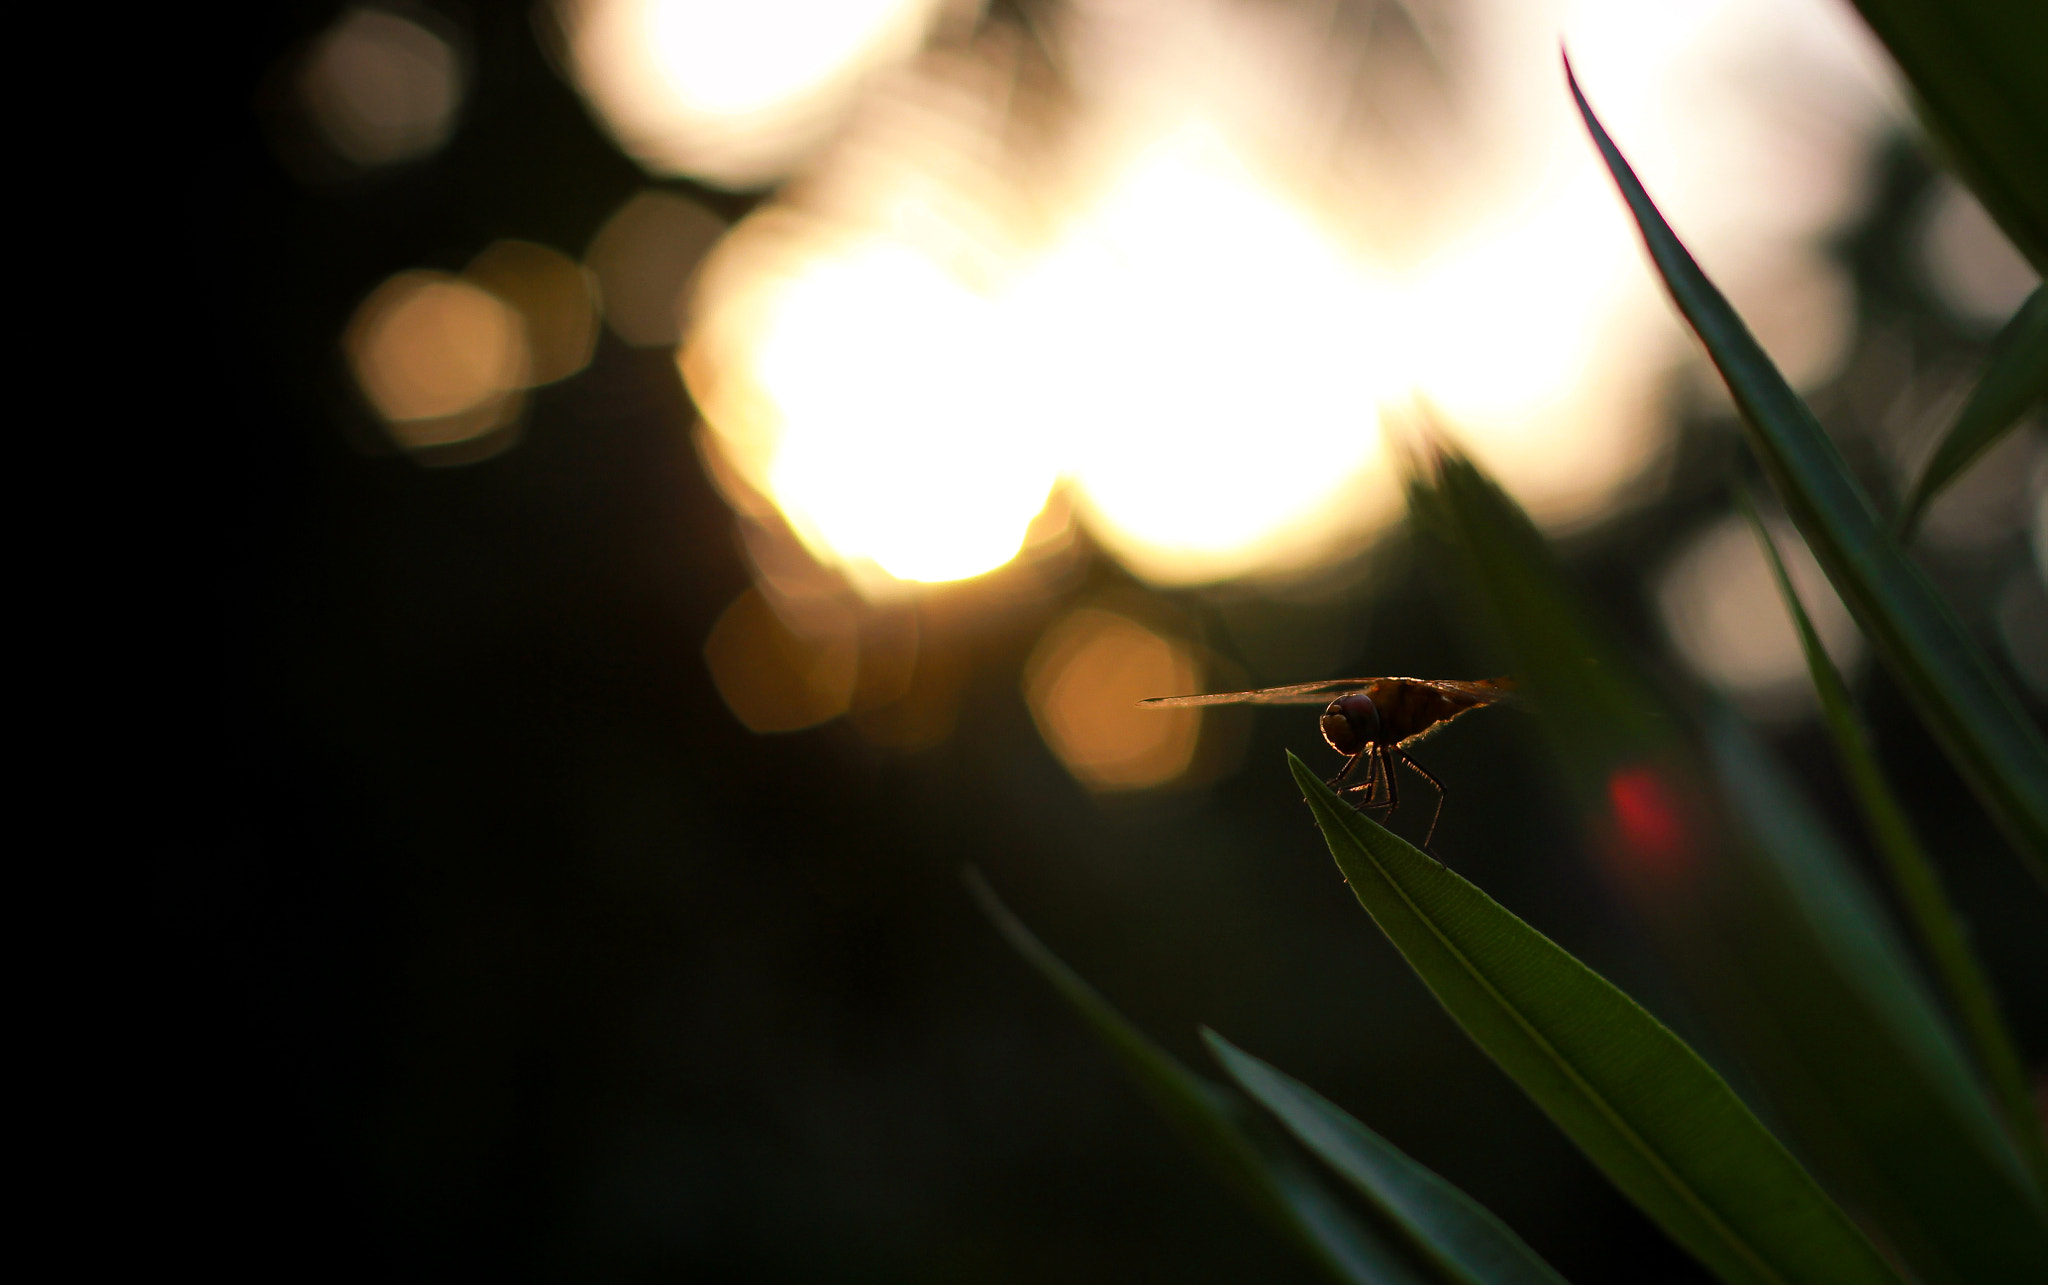 Photograph Dragonfly and sunset by Kannan Gopalakrishnan on 500px